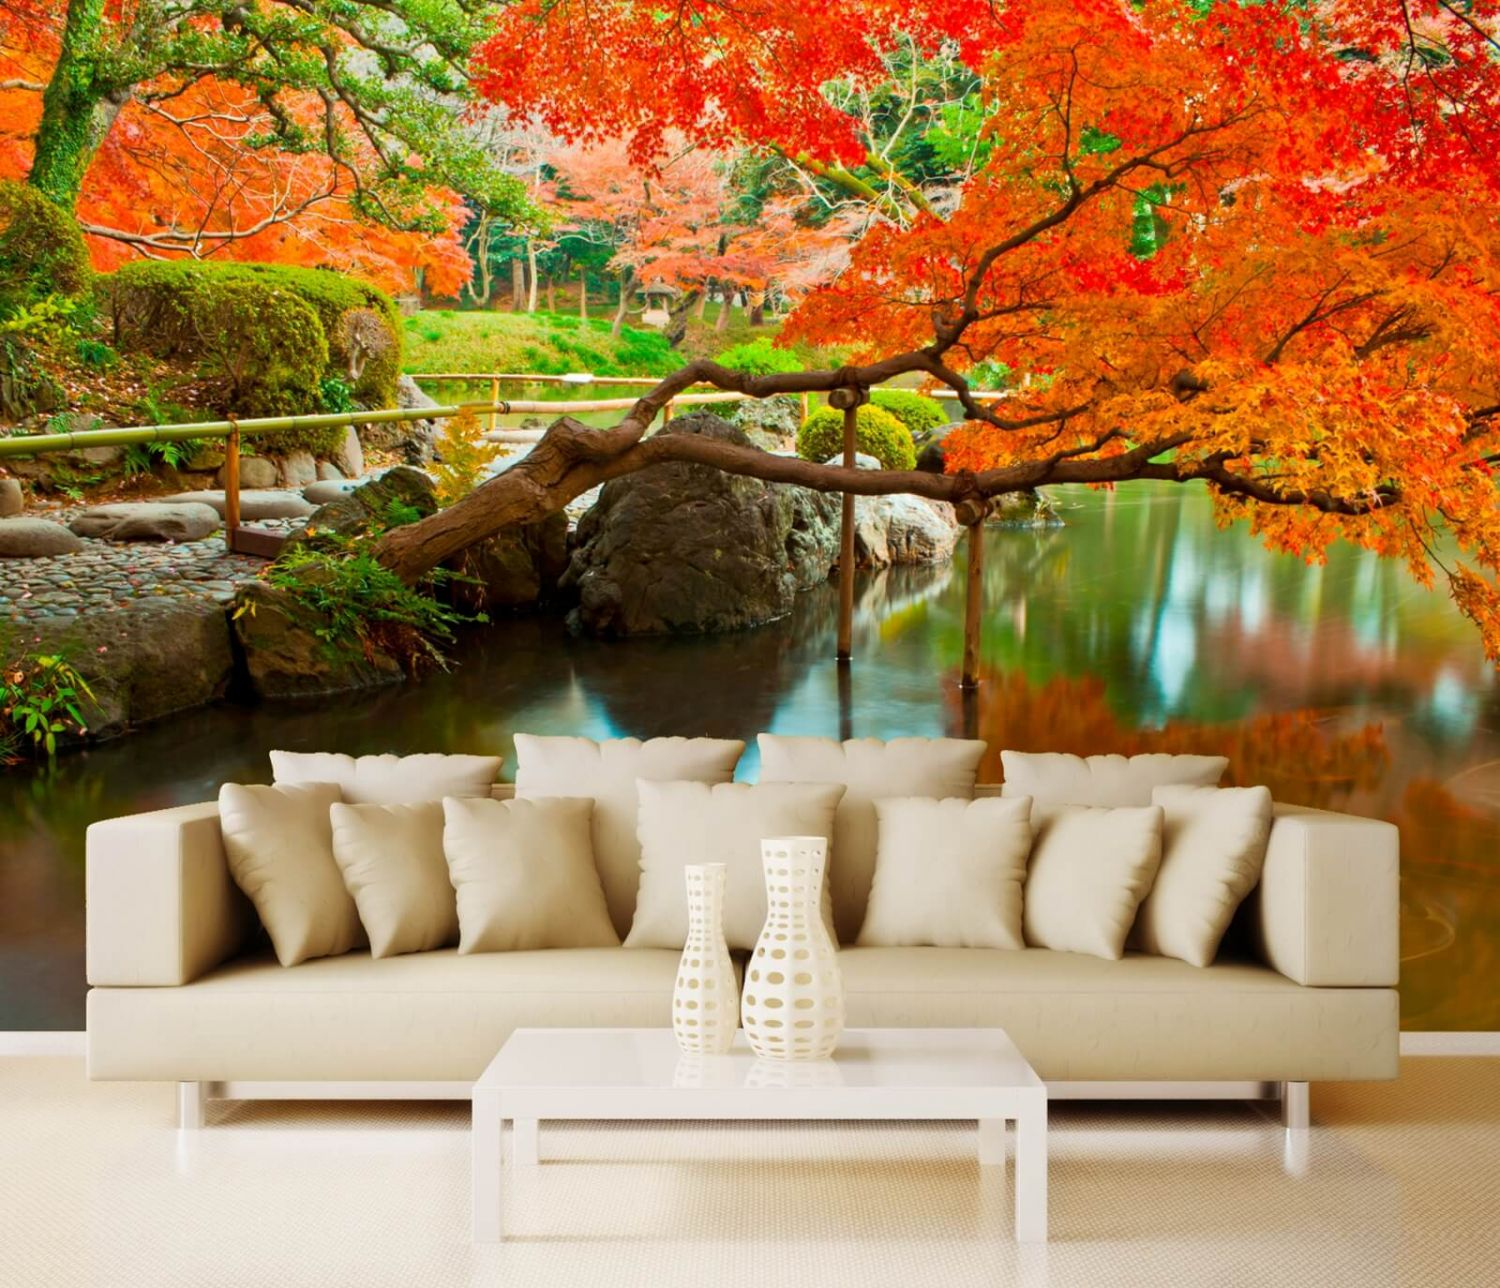 vlies xxl poster fototapete natur blumen japanischer garten ebay. Black Bedroom Furniture Sets. Home Design Ideas